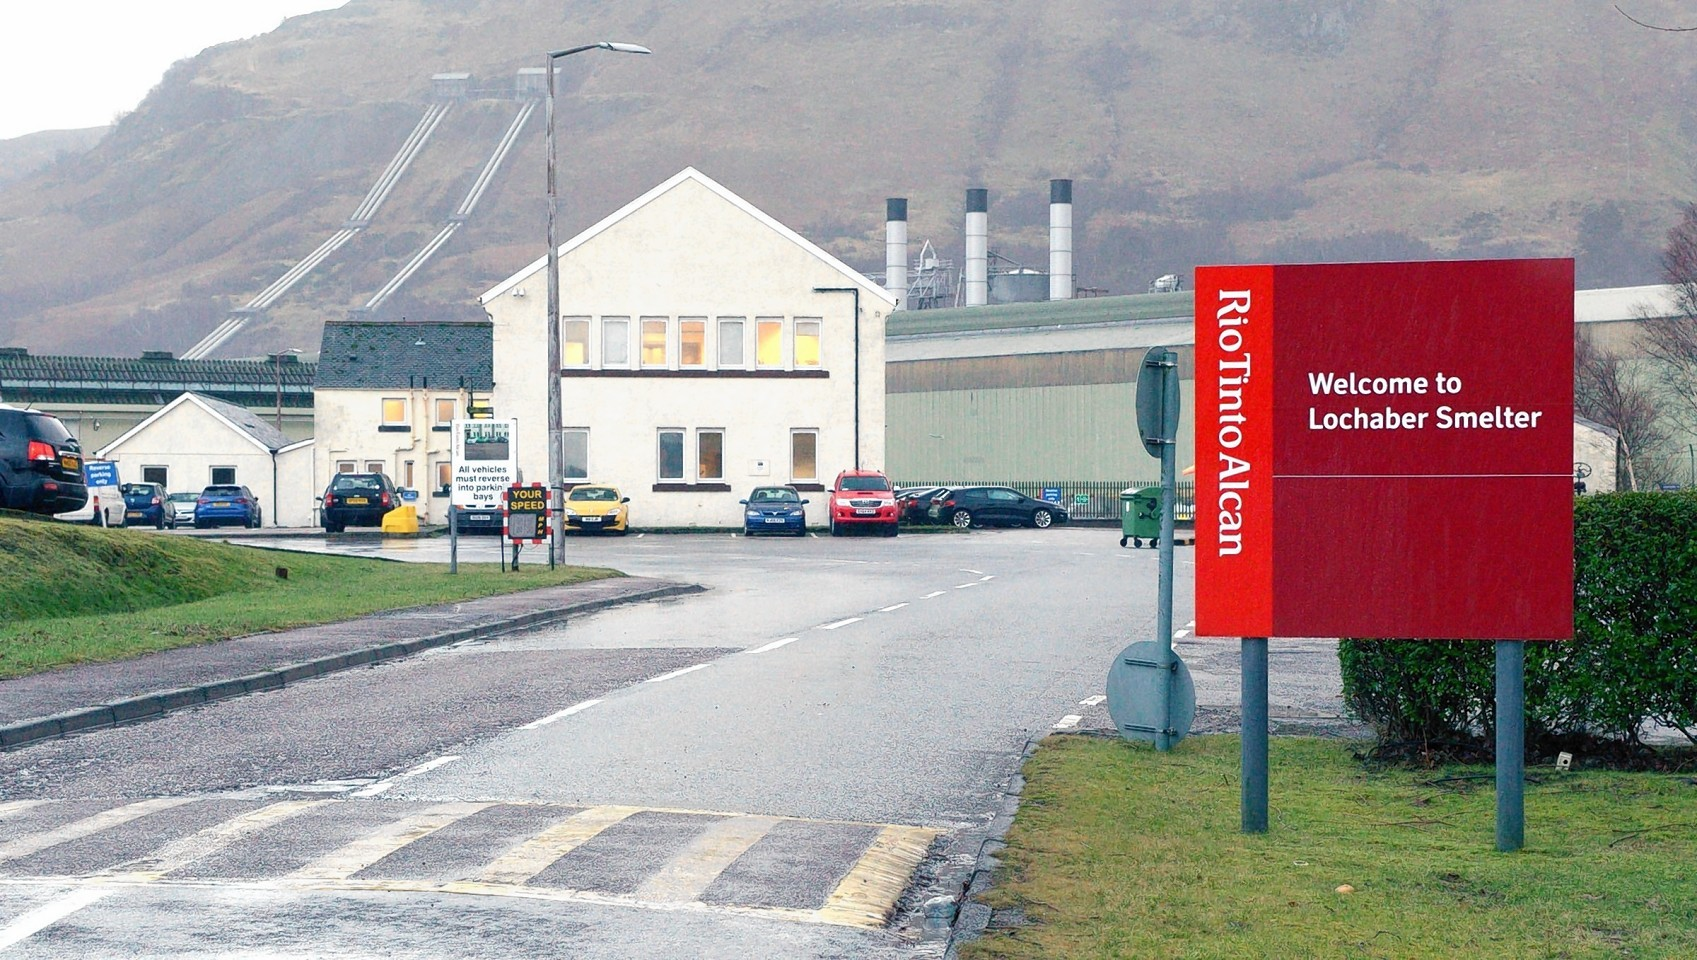 Rio Tinto smelter in Fort William